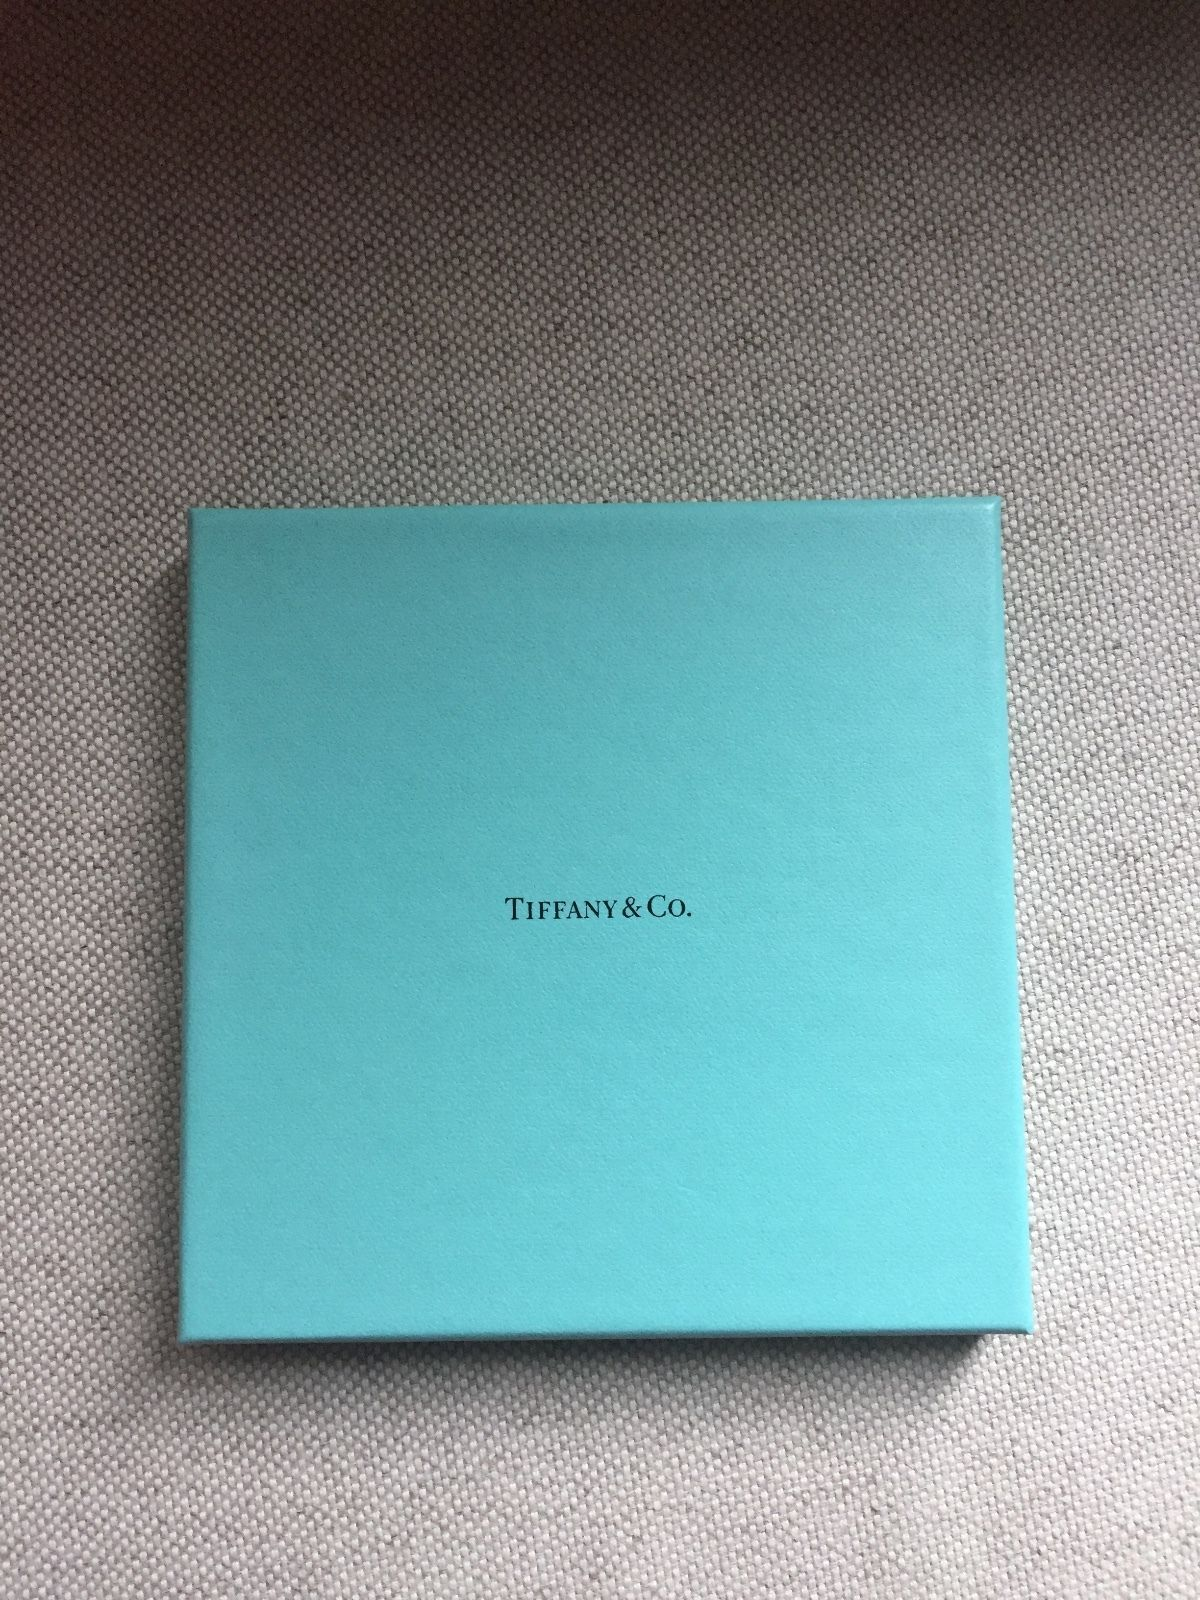 Coupons Giftcards Tiffany Co Gift Card 50 Coupons Giftcards Gift Card Sale Gift Card Cards